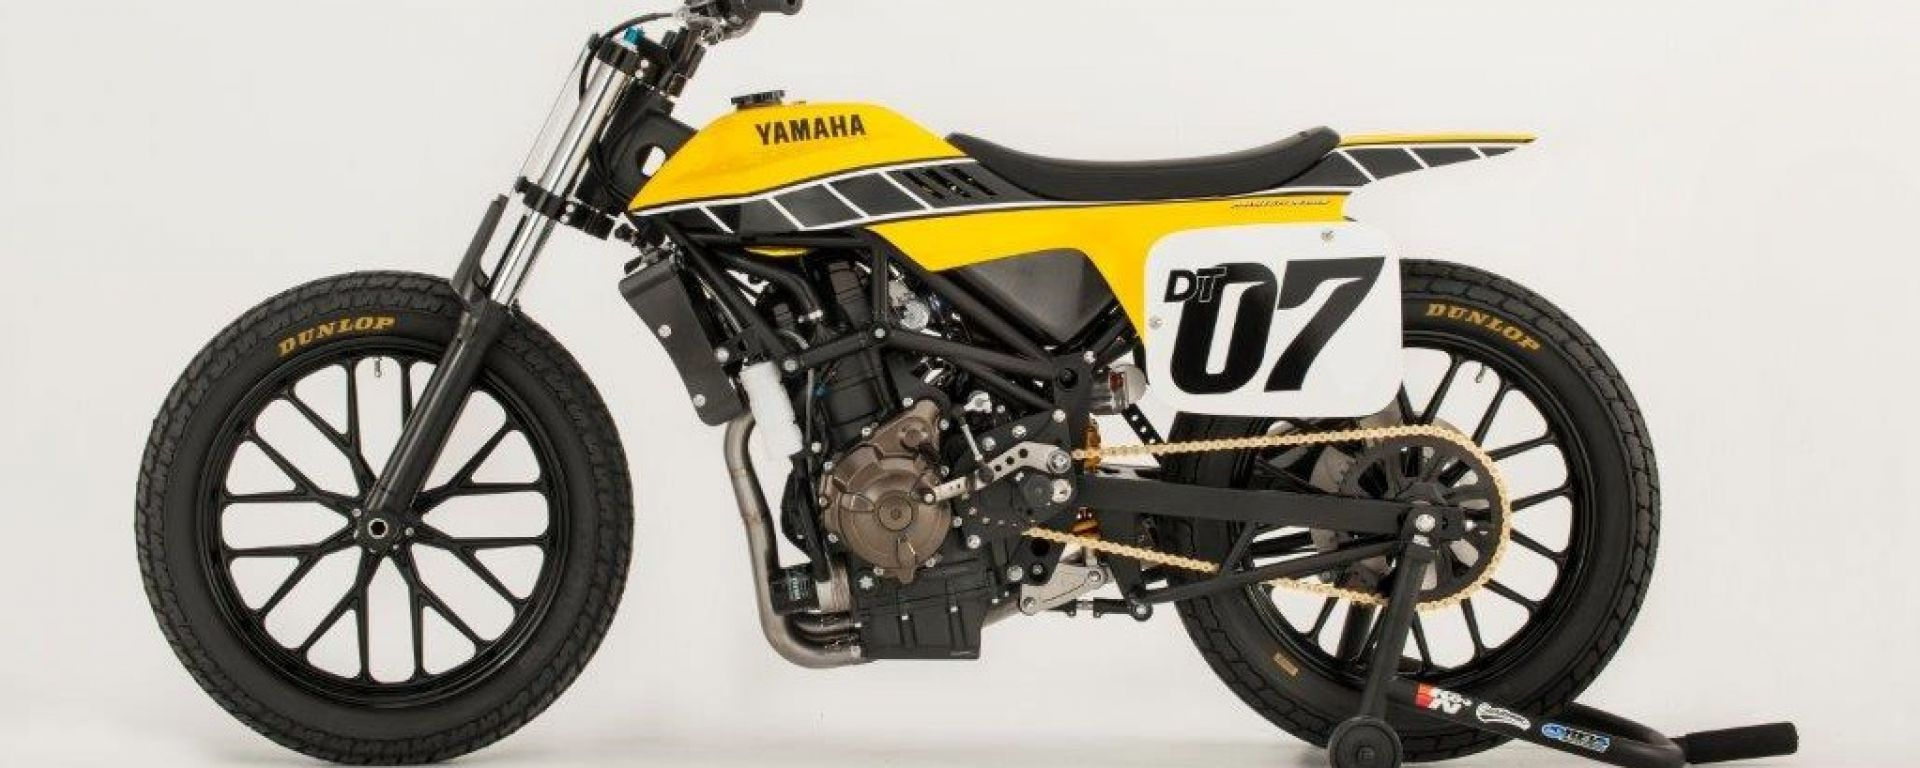 Yamaha DT-07 Flat Track Concept